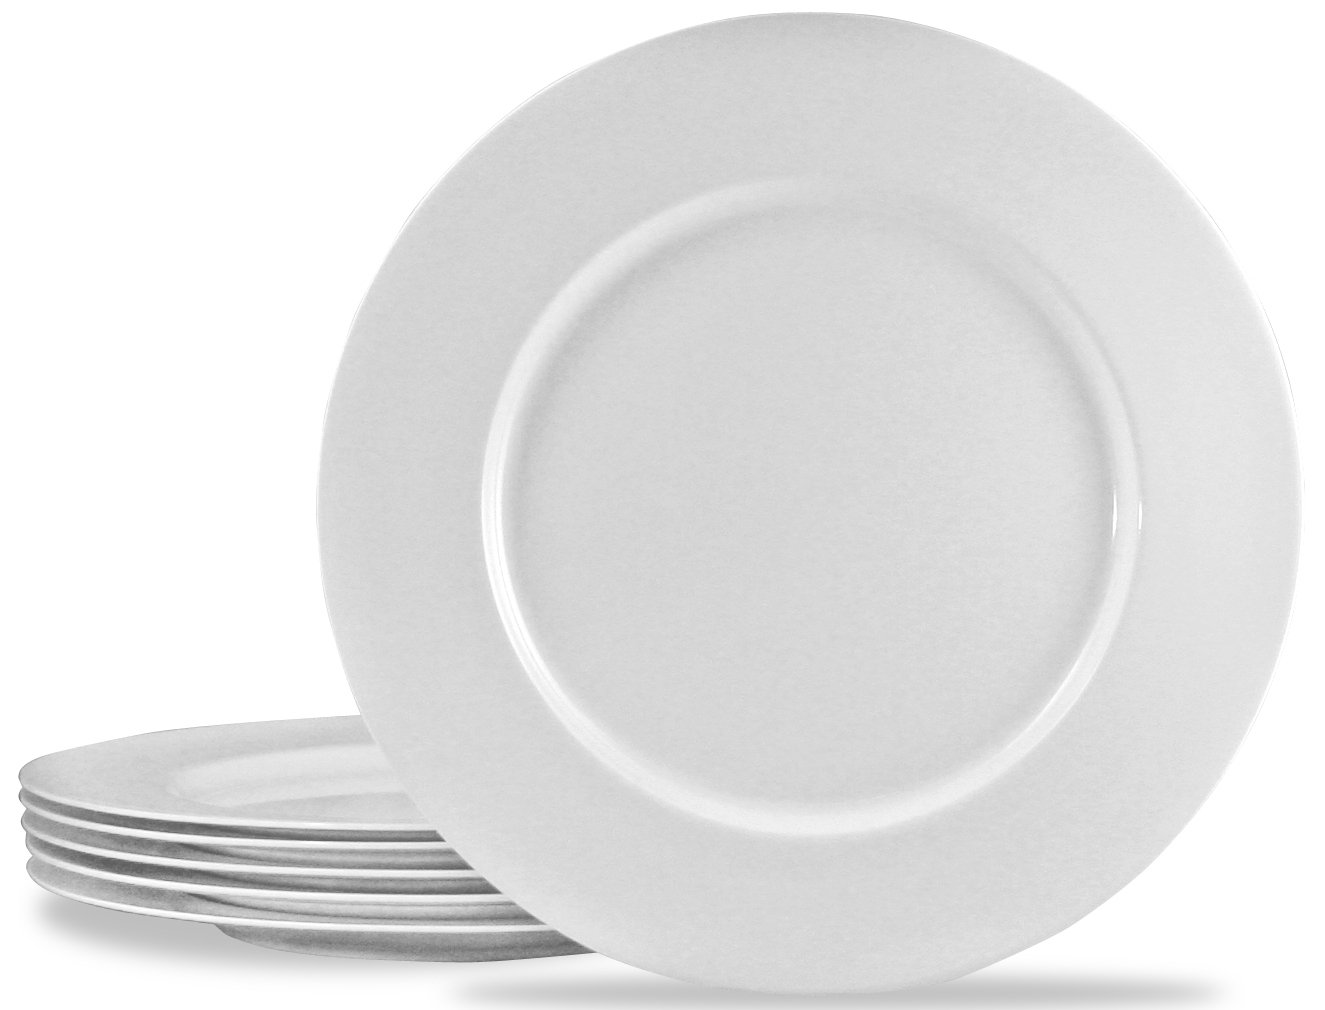 Amazon.com | Calypso Basics by Reston Lloyd Melamine Dinner Plate Set of 6 White Plastic Plates Dinner Plates  sc 1 st  Amazon.com : melamine plate set - pezcame.com